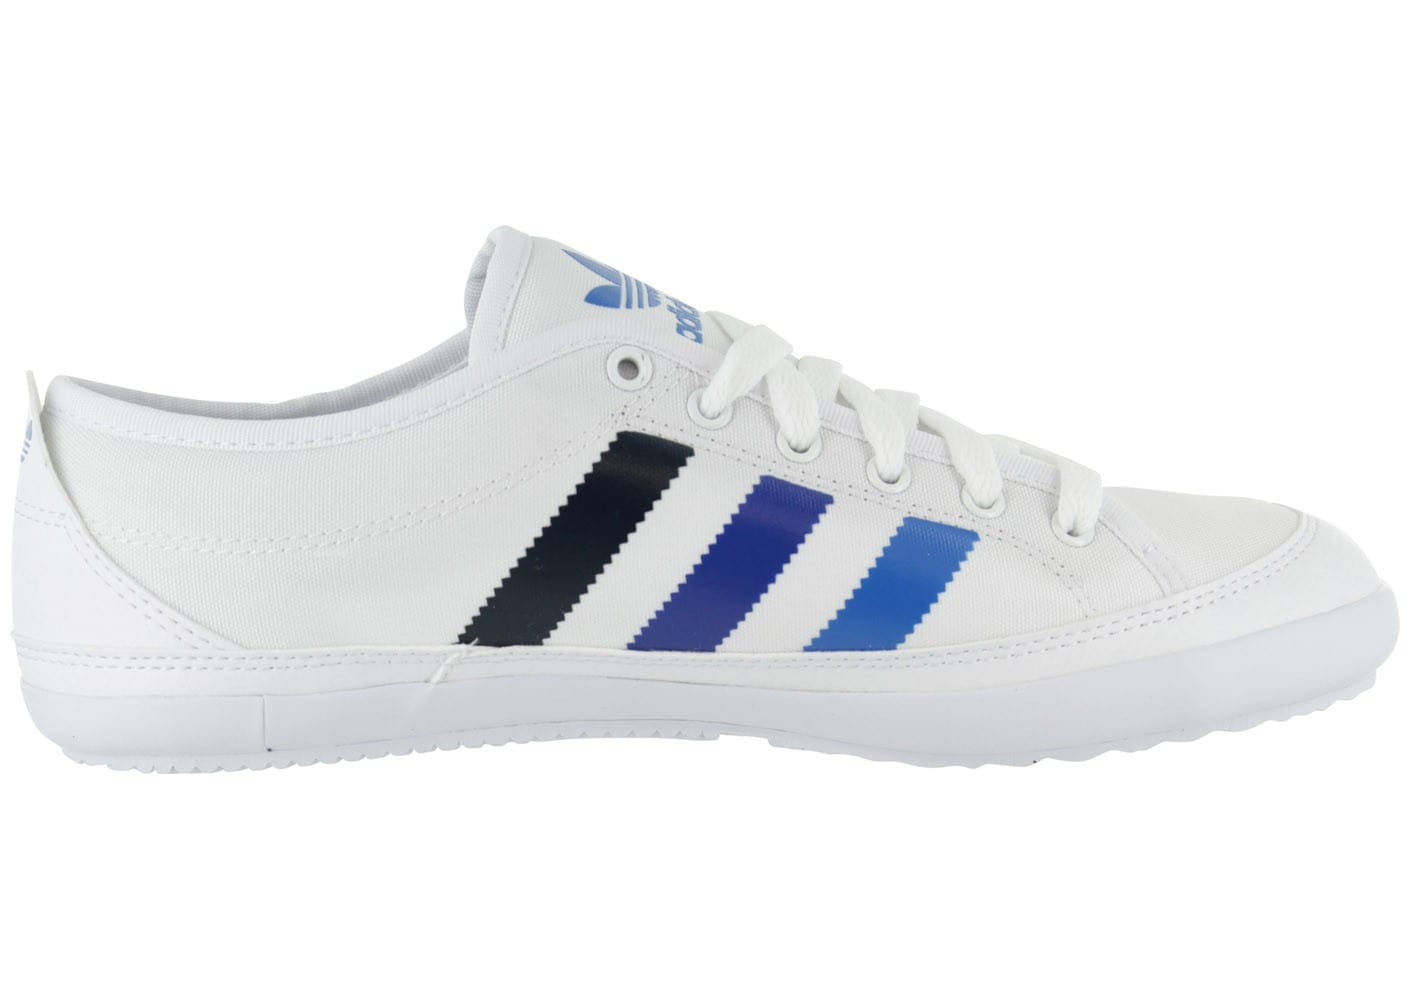 adidas nizza blanche chaussures homme chausport. Black Bedroom Furniture Sets. Home Design Ideas